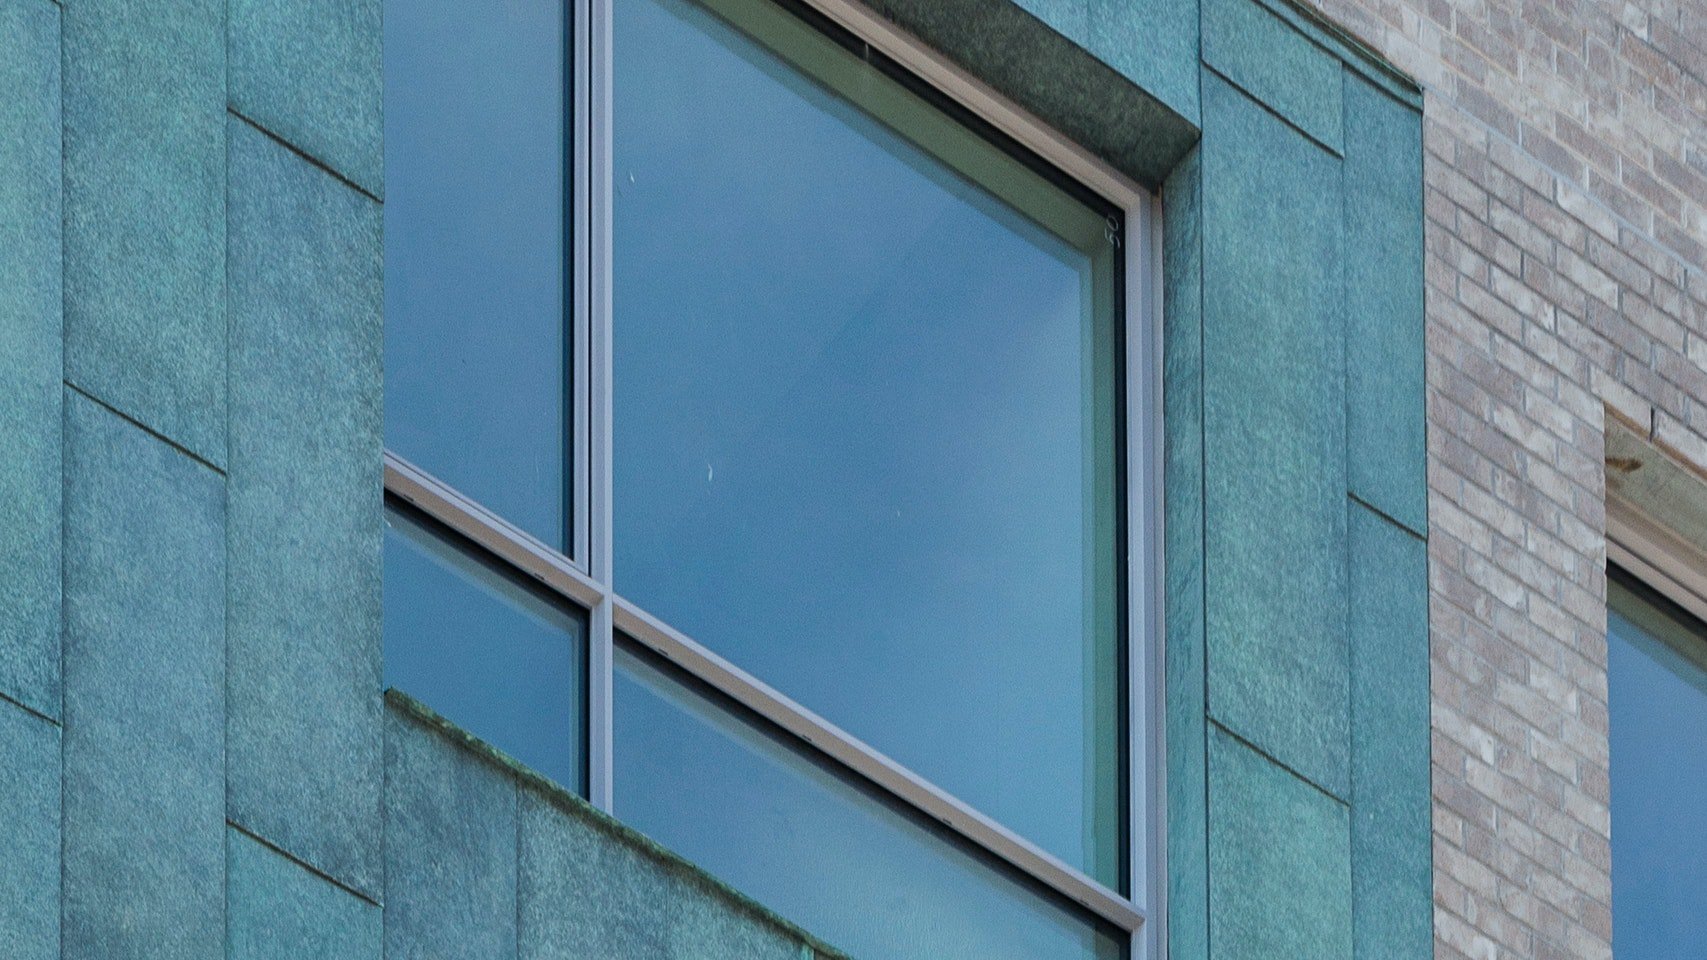 Transforming a Williamsburg facade with Patinated Copper